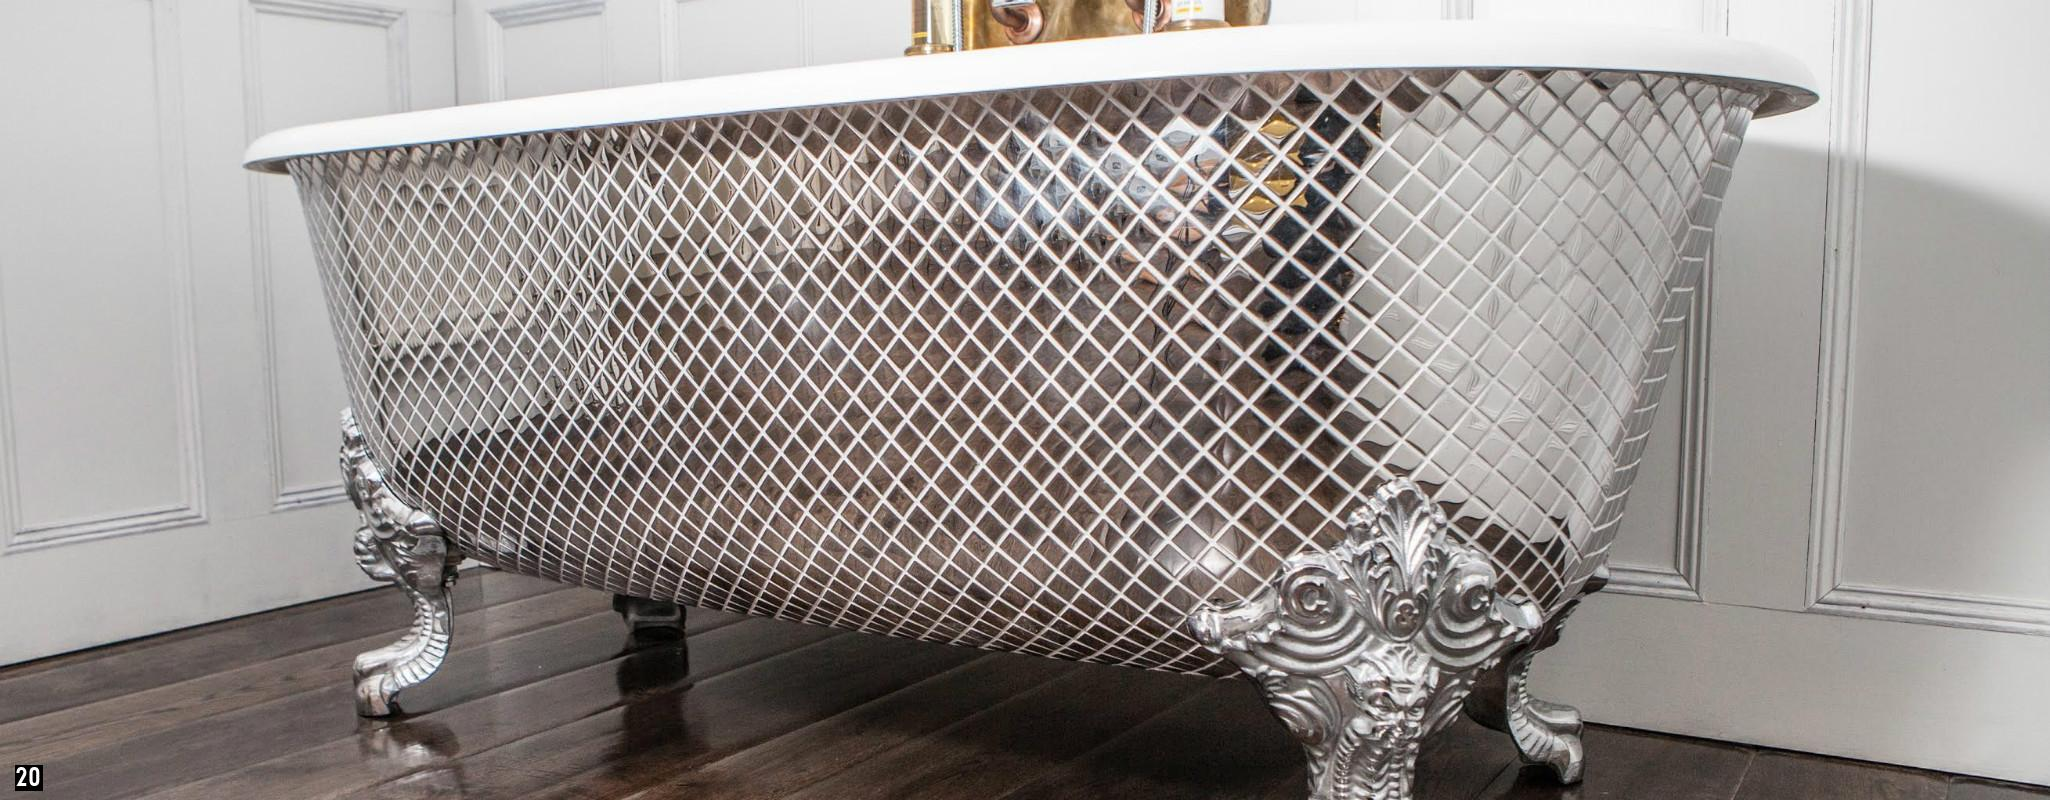 Mosaic Bath Tub, Silver Mosaic Roll Top Bath , Vintage Mosaic Tub